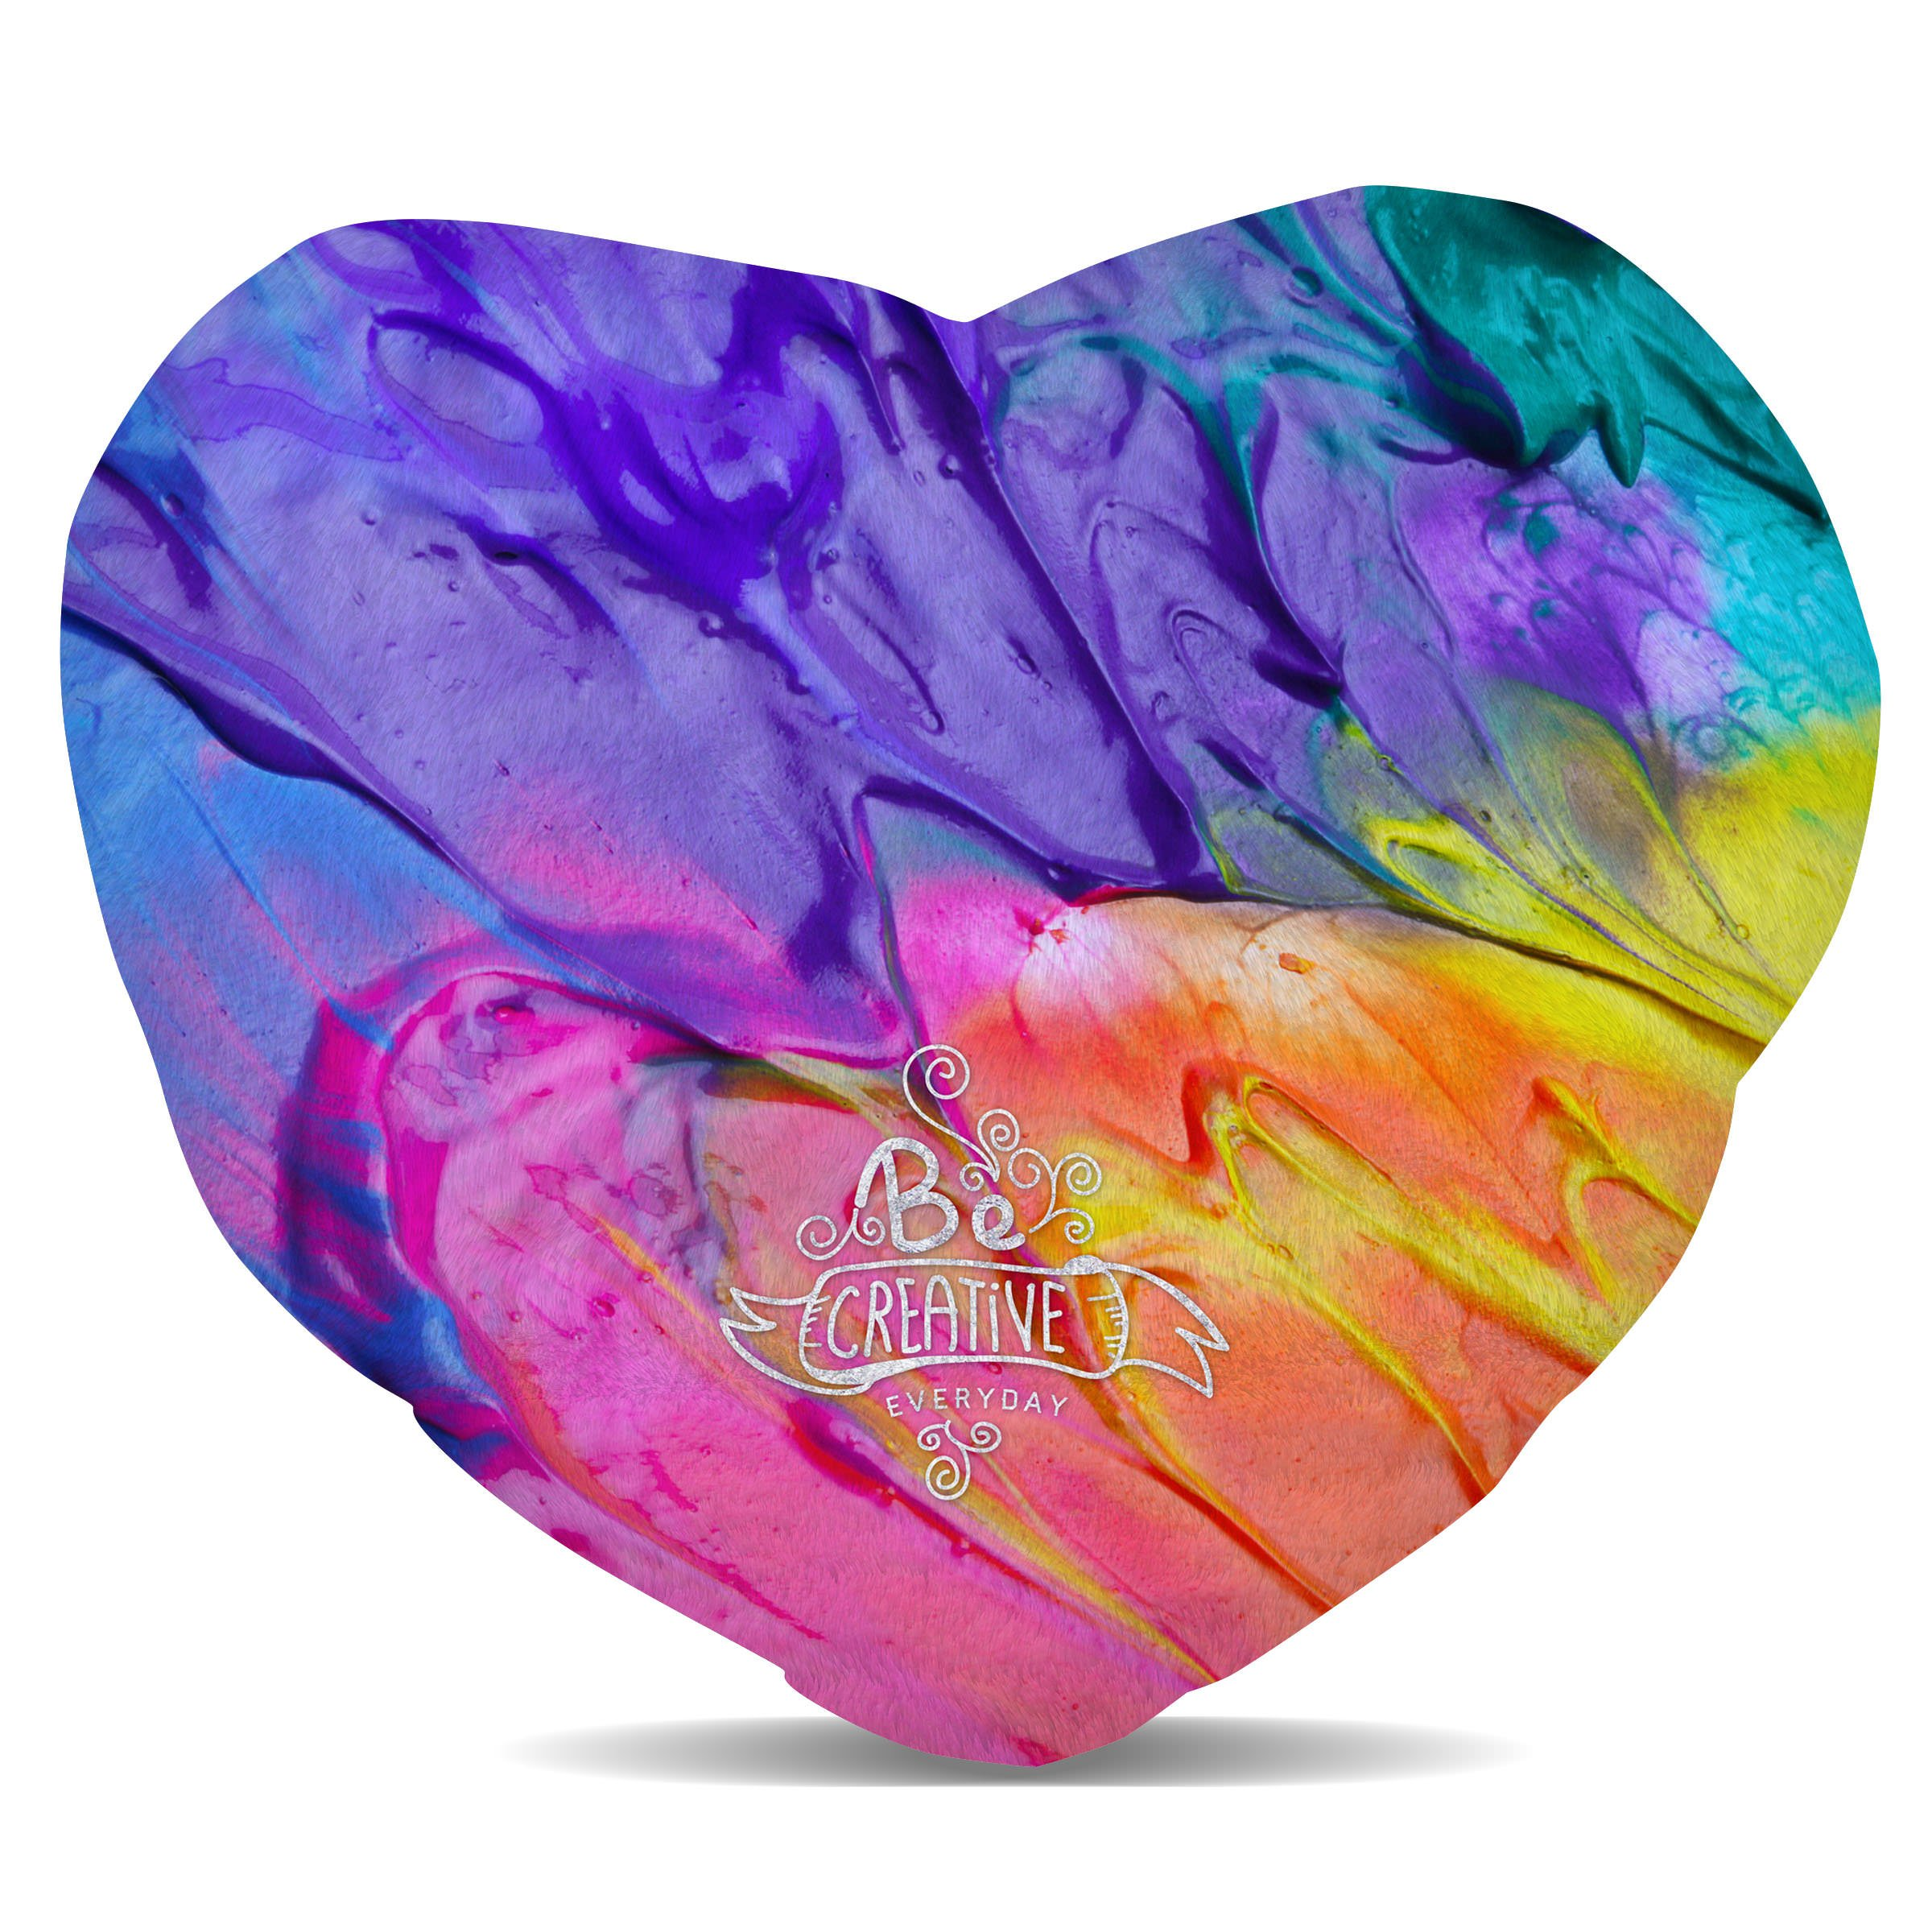 Queen of Cases Be Creative Every Day Fleece Cushion - Heart Cushion - 16in by Queen of Cases